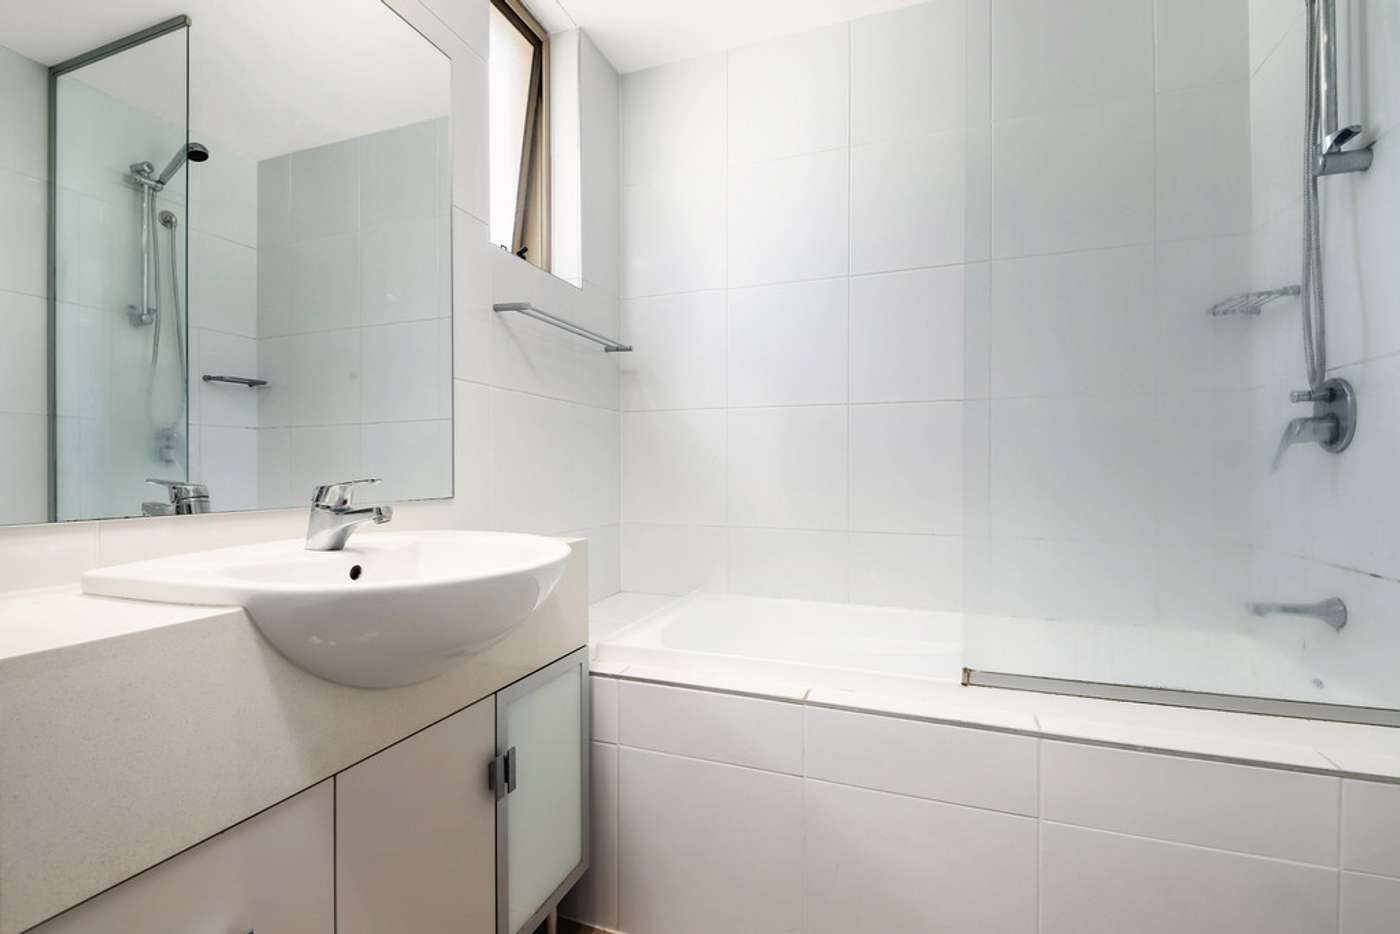 Sixth view of Homely apartment listing, 307/4 Stromboli Strait, Wentworth Point NSW 2127